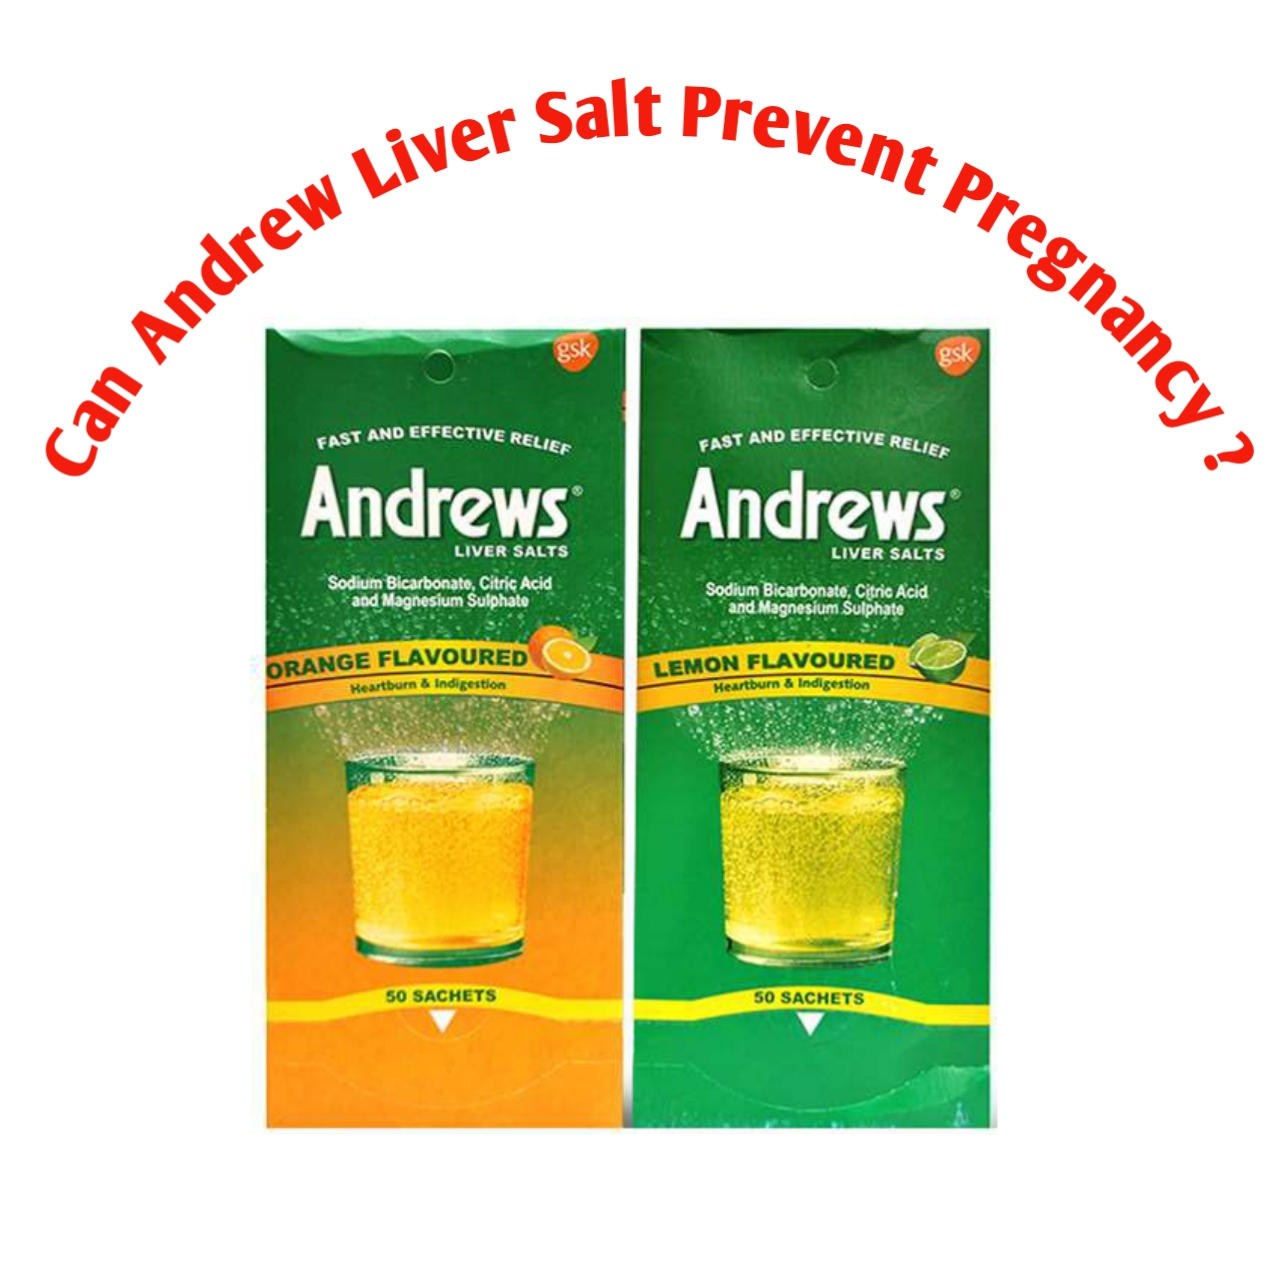 Can Andrews Liver Salt Flush Out Sperm